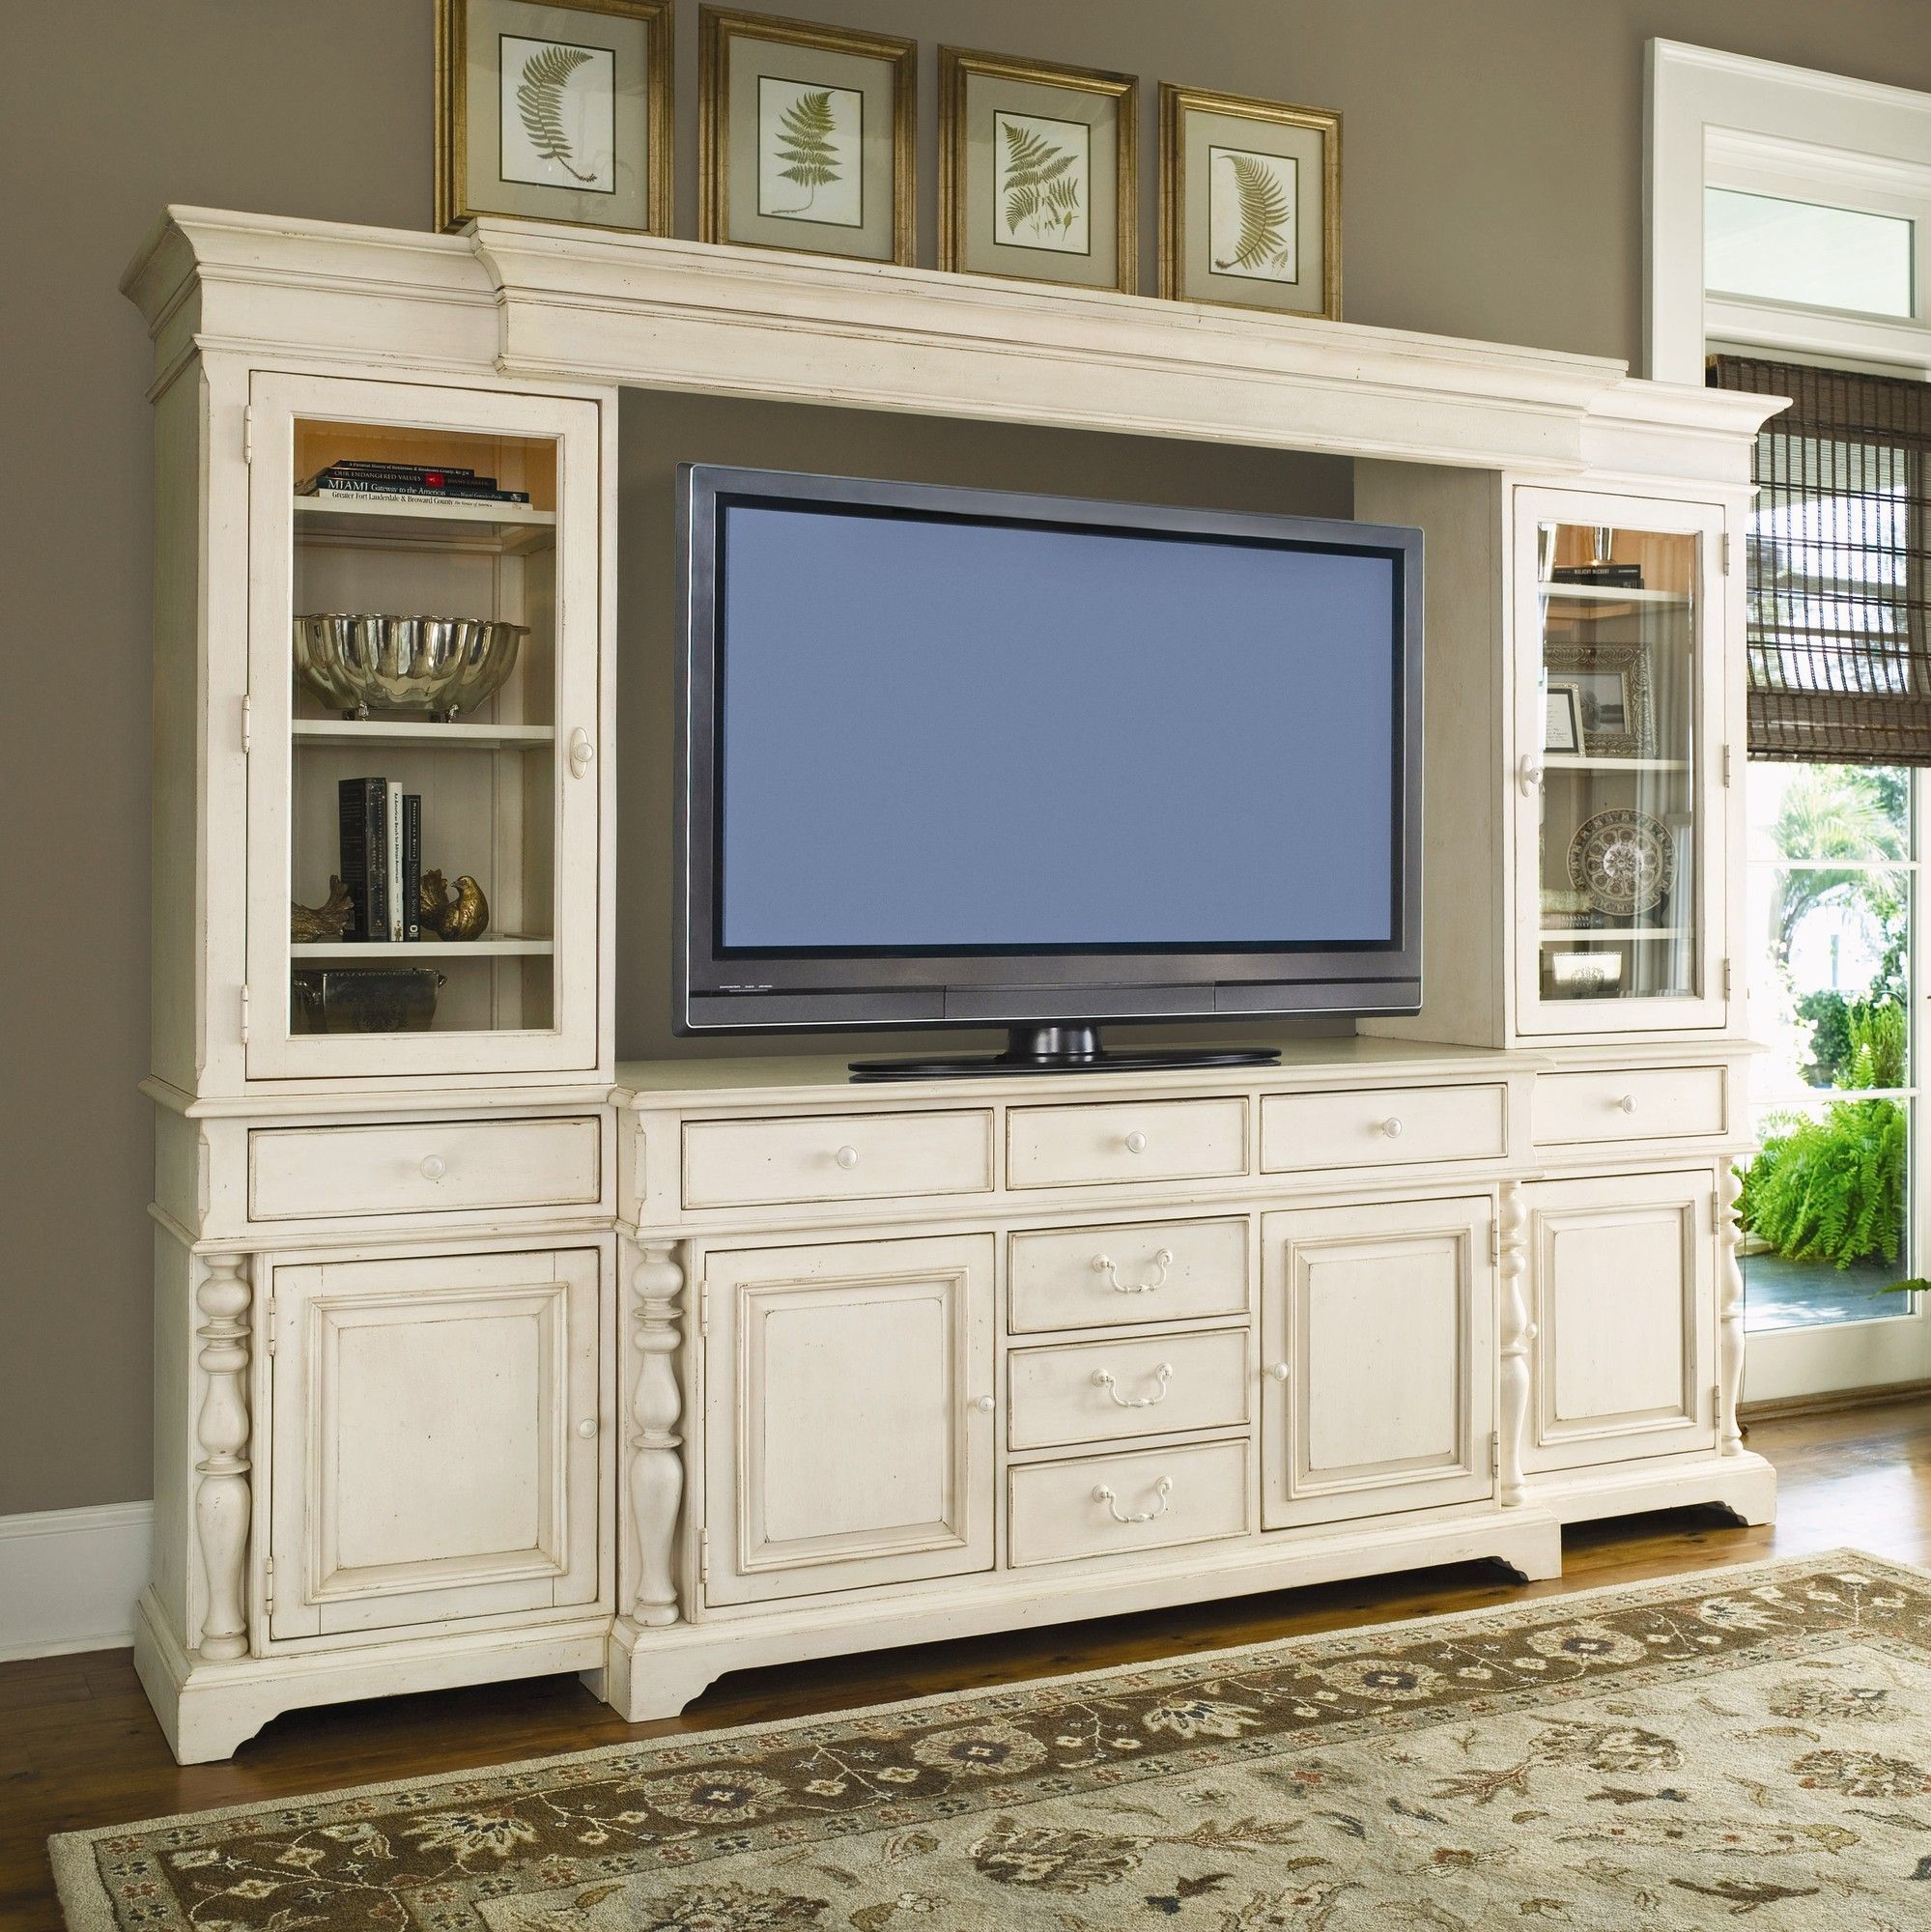 Lapierre cabinetry custom home theater cabinets bathroom cabinets - Paula Deen Home Entertainment Center In Linen Nebraska Furniture Mart